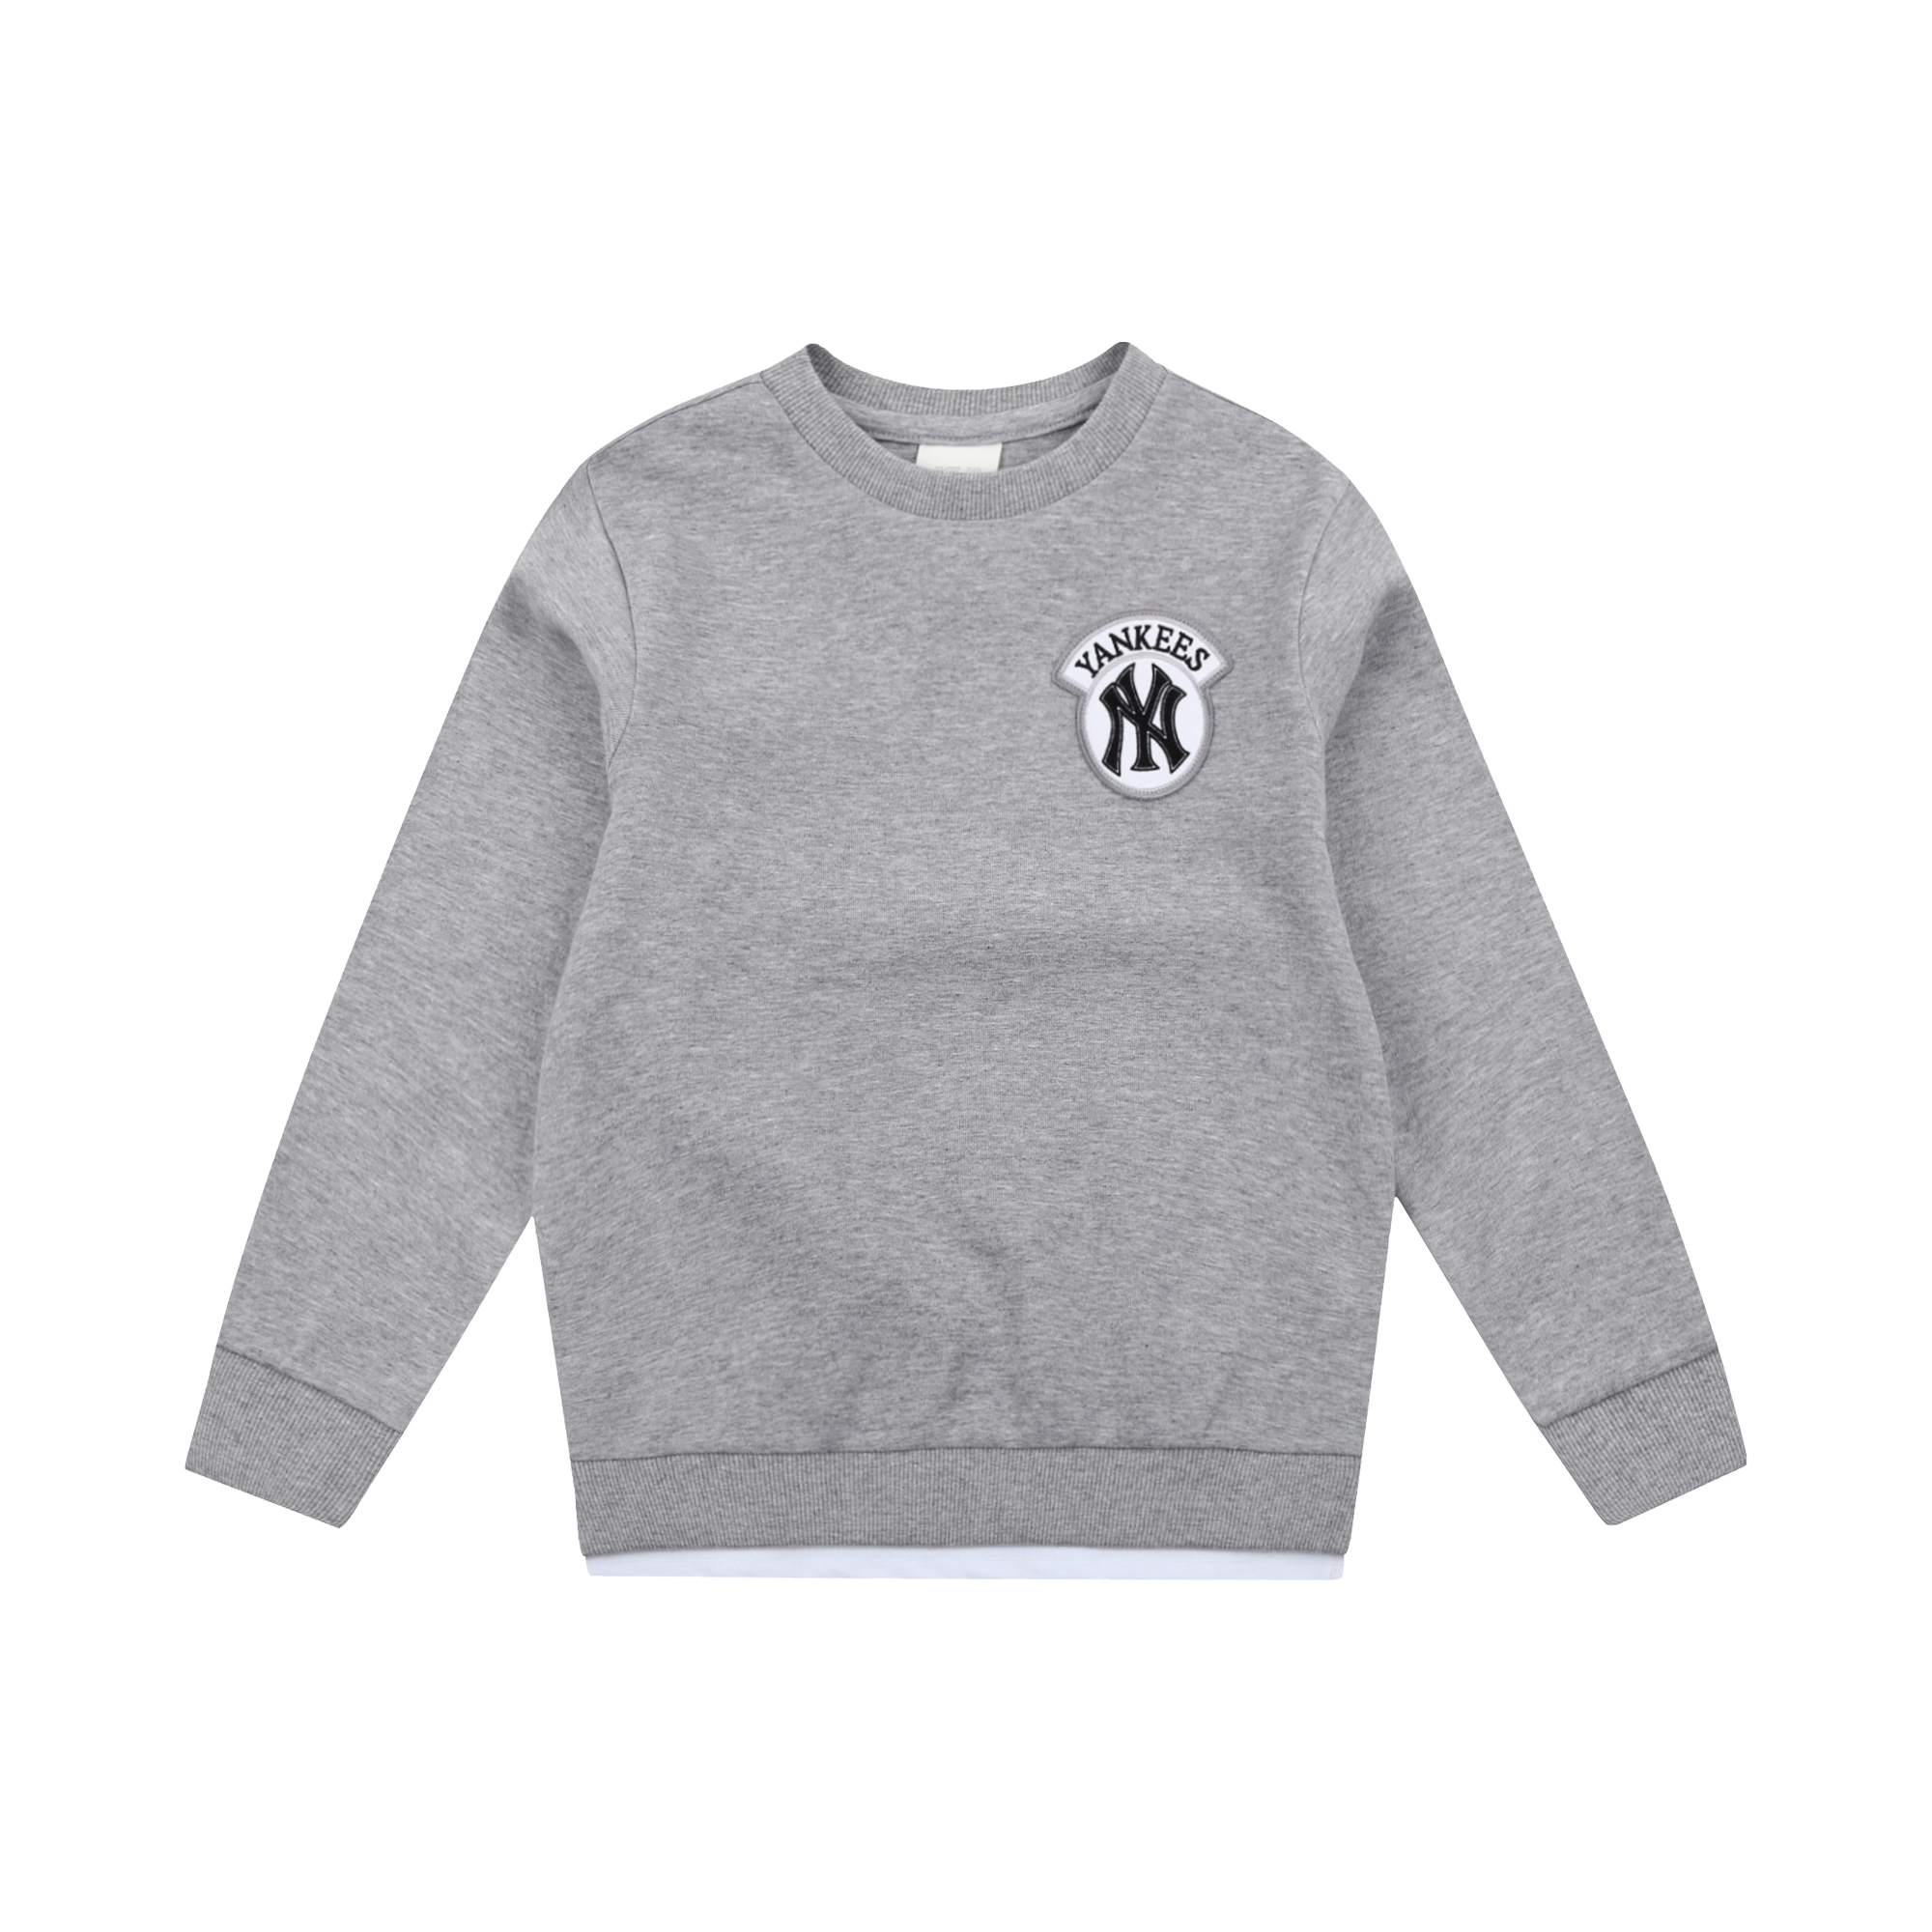 NEW YORK YANKEES UNISEX LAYERED SWEATSHIRT